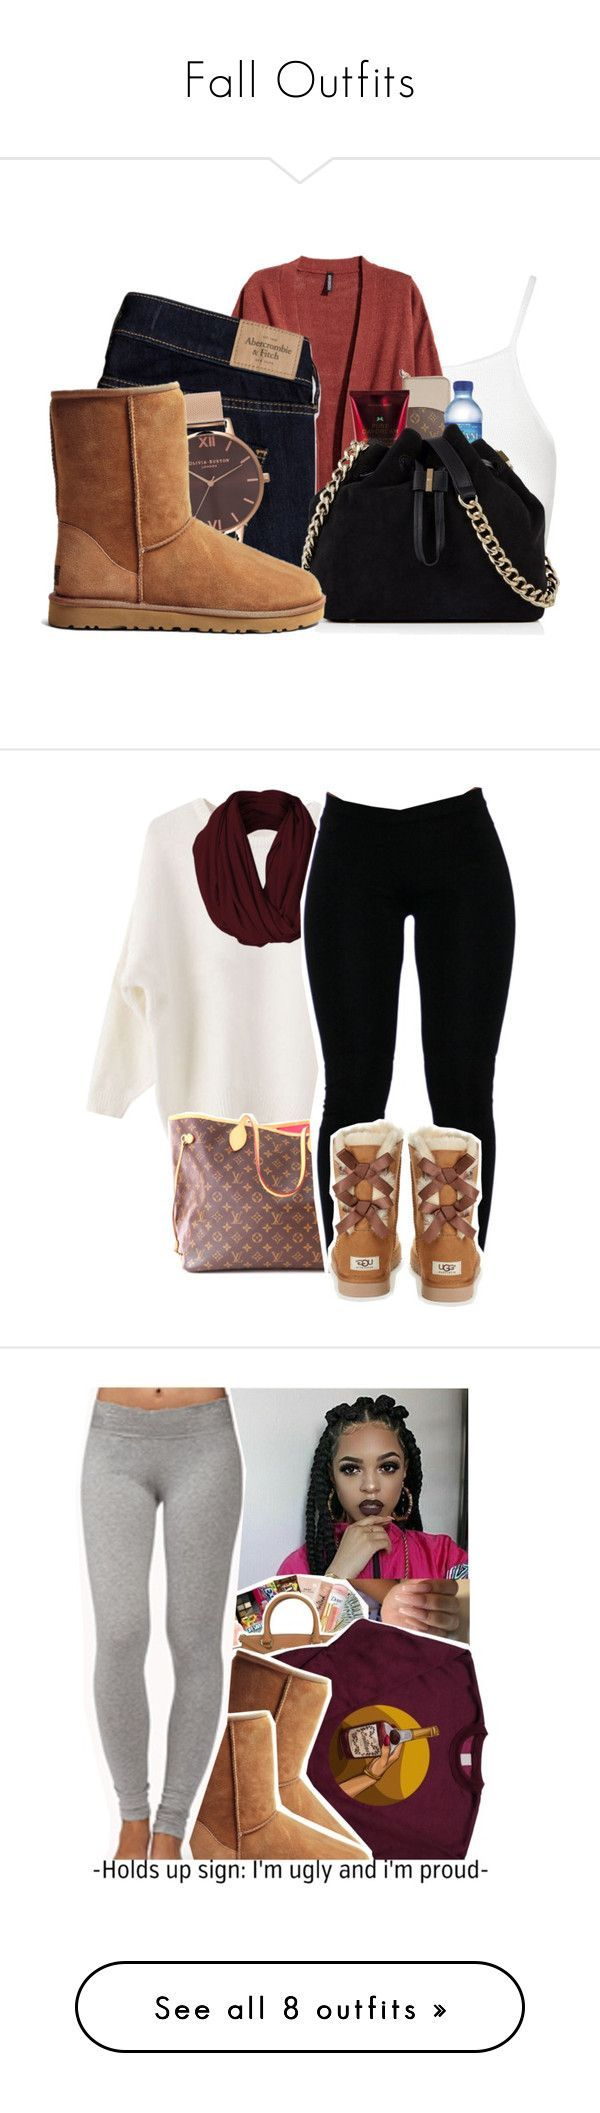 """Fall Outfits"" by uniquee-beauty ❤ liked on Polyvore featuring Topshop, Coach, Abercrombie & Fitch, Olivia Burton, Victoria's Secret, Karen Millen, UGG Australia, Louis Vuitton, Forever 21 and Ralph Lauren"